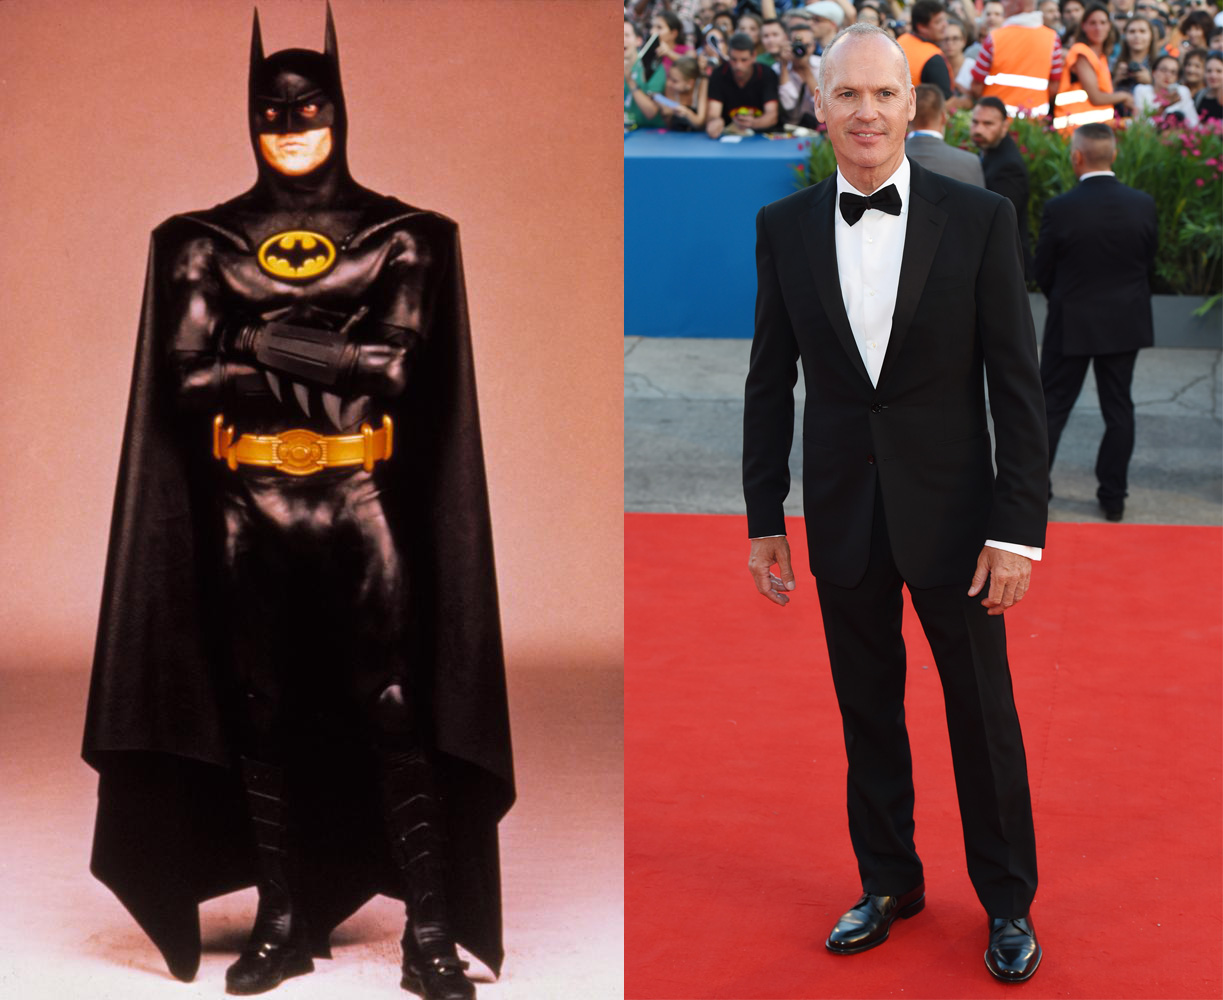 Best known for starring as Batman in Batman and Batman Returns in 1989 and 1992, Michael Keaton laid low for a couple of decades until this year's Birdman. His biggest role was in Quentin Tarantino's Jackie Brown.